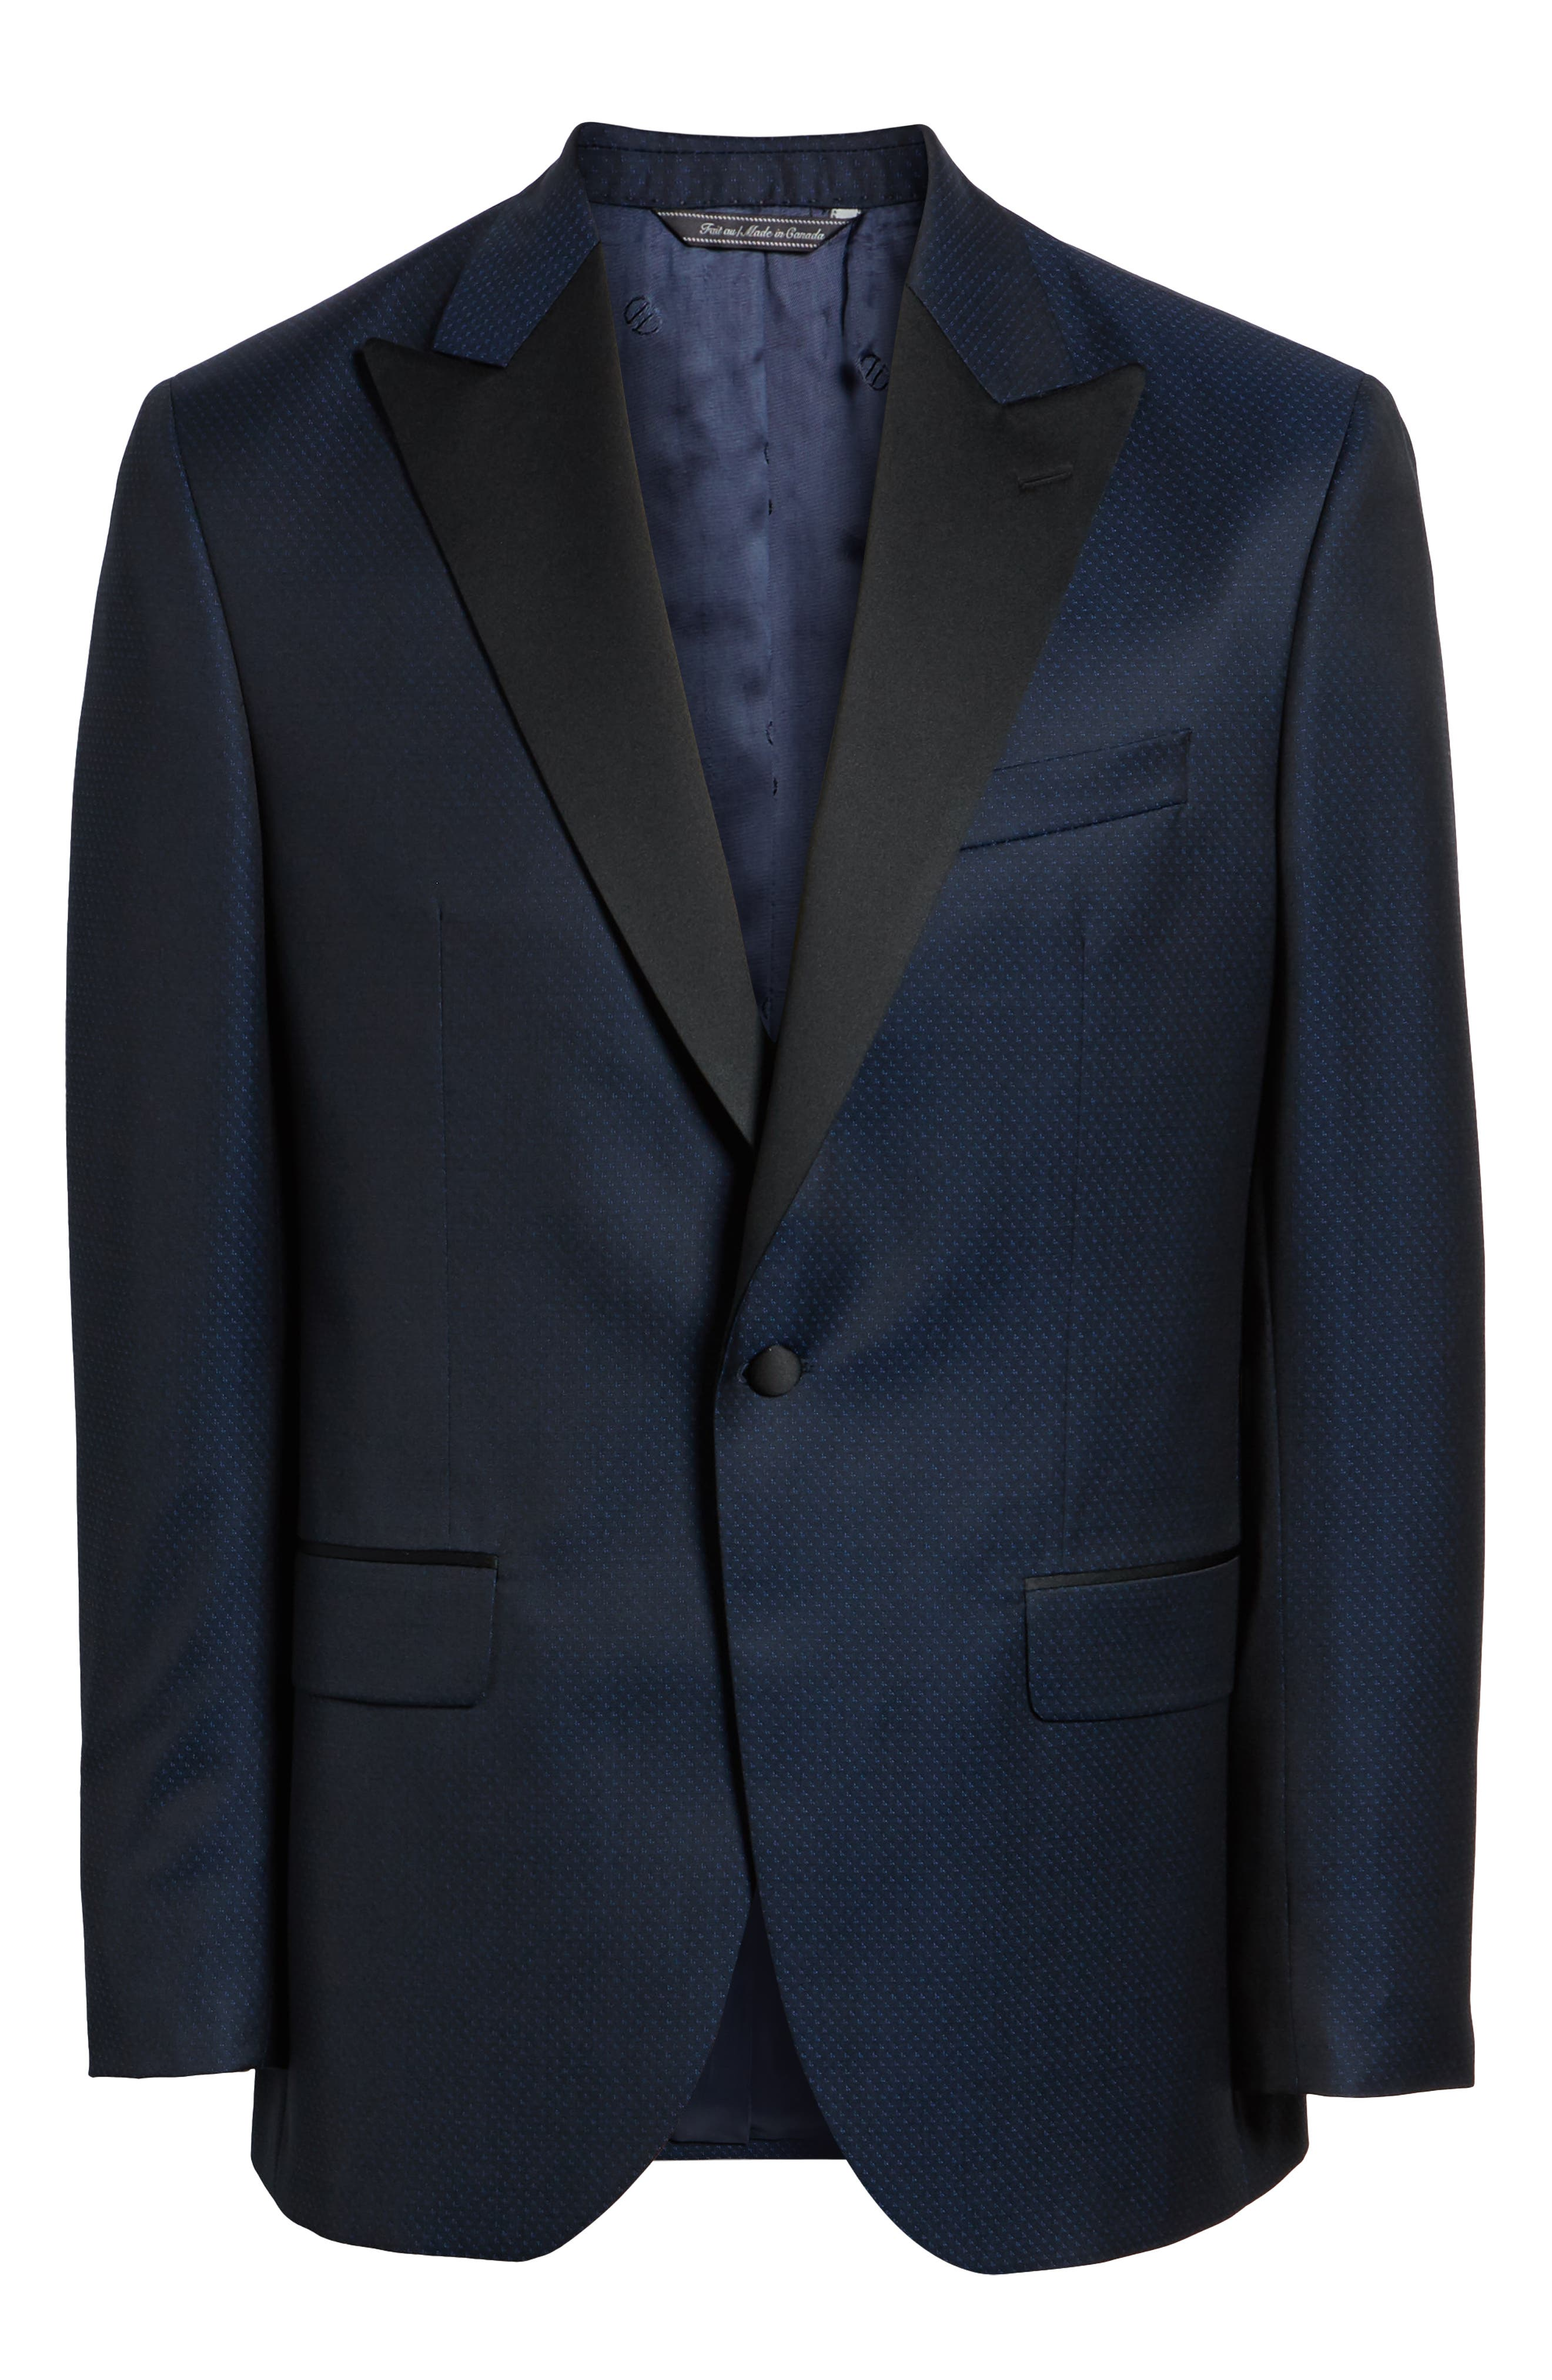 DAVID DONAHUE,                             Russell Classic Fit Wool Dinner Jacket,                             Alternate thumbnail 5, color,                             NAVY